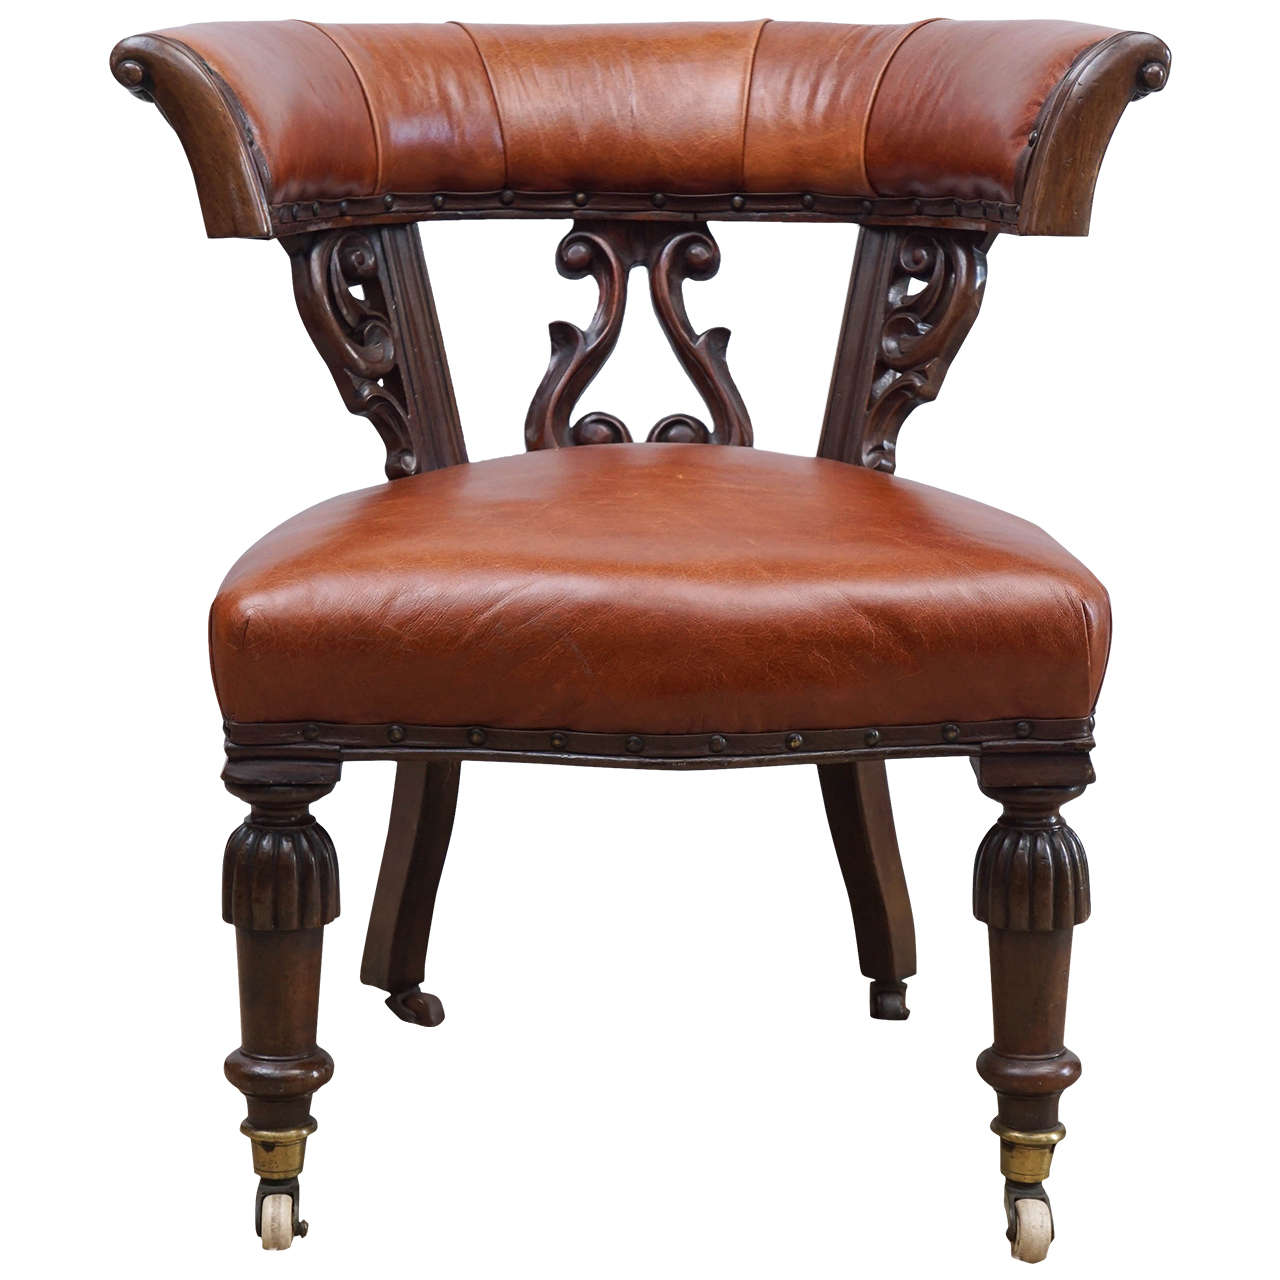 Mid 19th Century English Leather Chair On Casters At 1stdibs. Full resolution‎  photo, nominally Width 1280 Height 1280 pixels, photo with #6D3524.